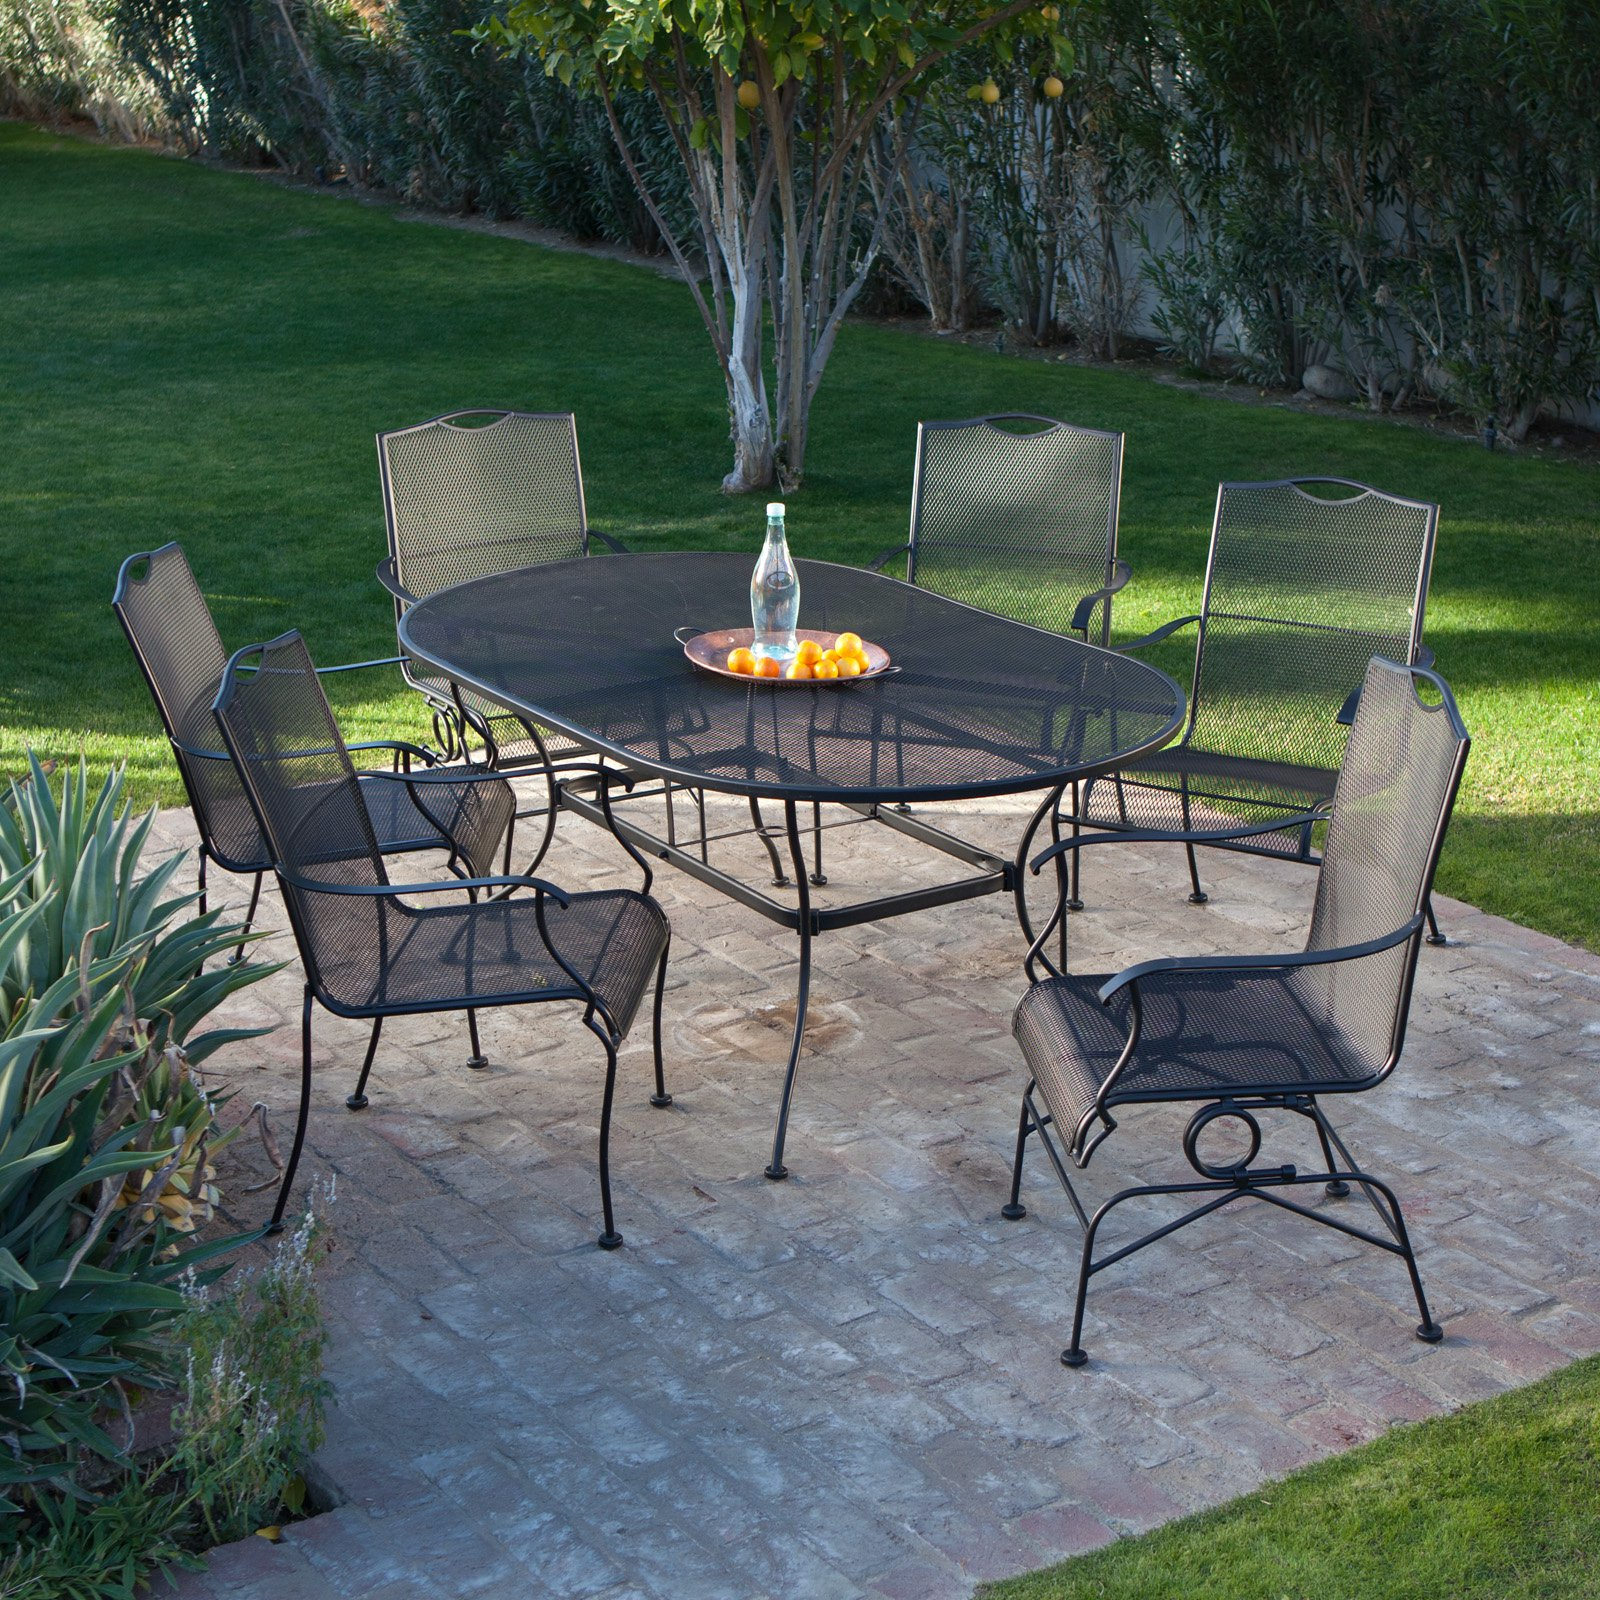 Ebern Designs Tarleton 5 Piece Dining Set – Walmart Pertaining To Current Tarleton 5 Piece Dining Sets (View 6 of 25)